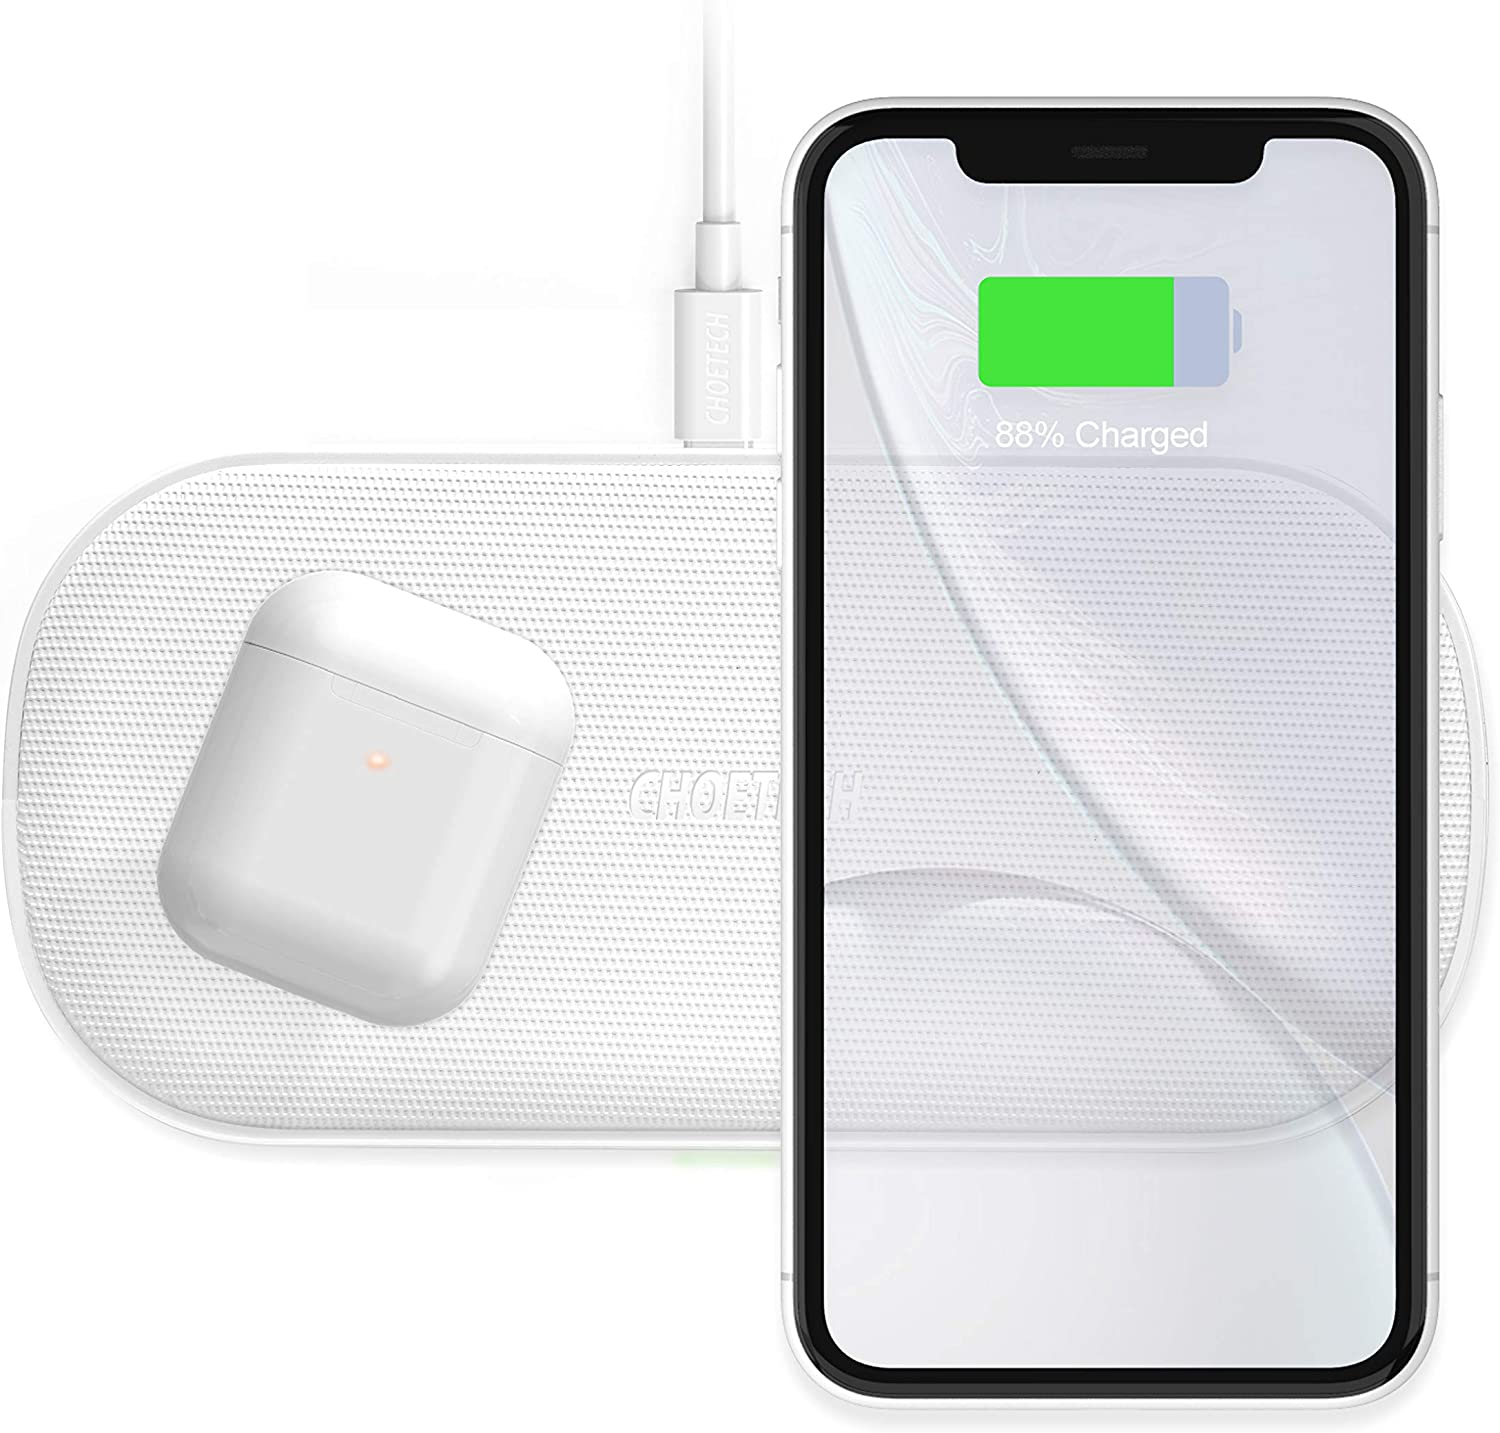 CHOETECH 7.5/10W Cargador Inalámbrico Doble, 5 Bobinas Fast Wireless Charger Qi Cargador Rápido para iPhone11/11Pro/11ProMax/SE/XR/XS MAX/X/8, Samsung Note10/S20/S10/S9, 5W para Huawei P30pro,Airpods2